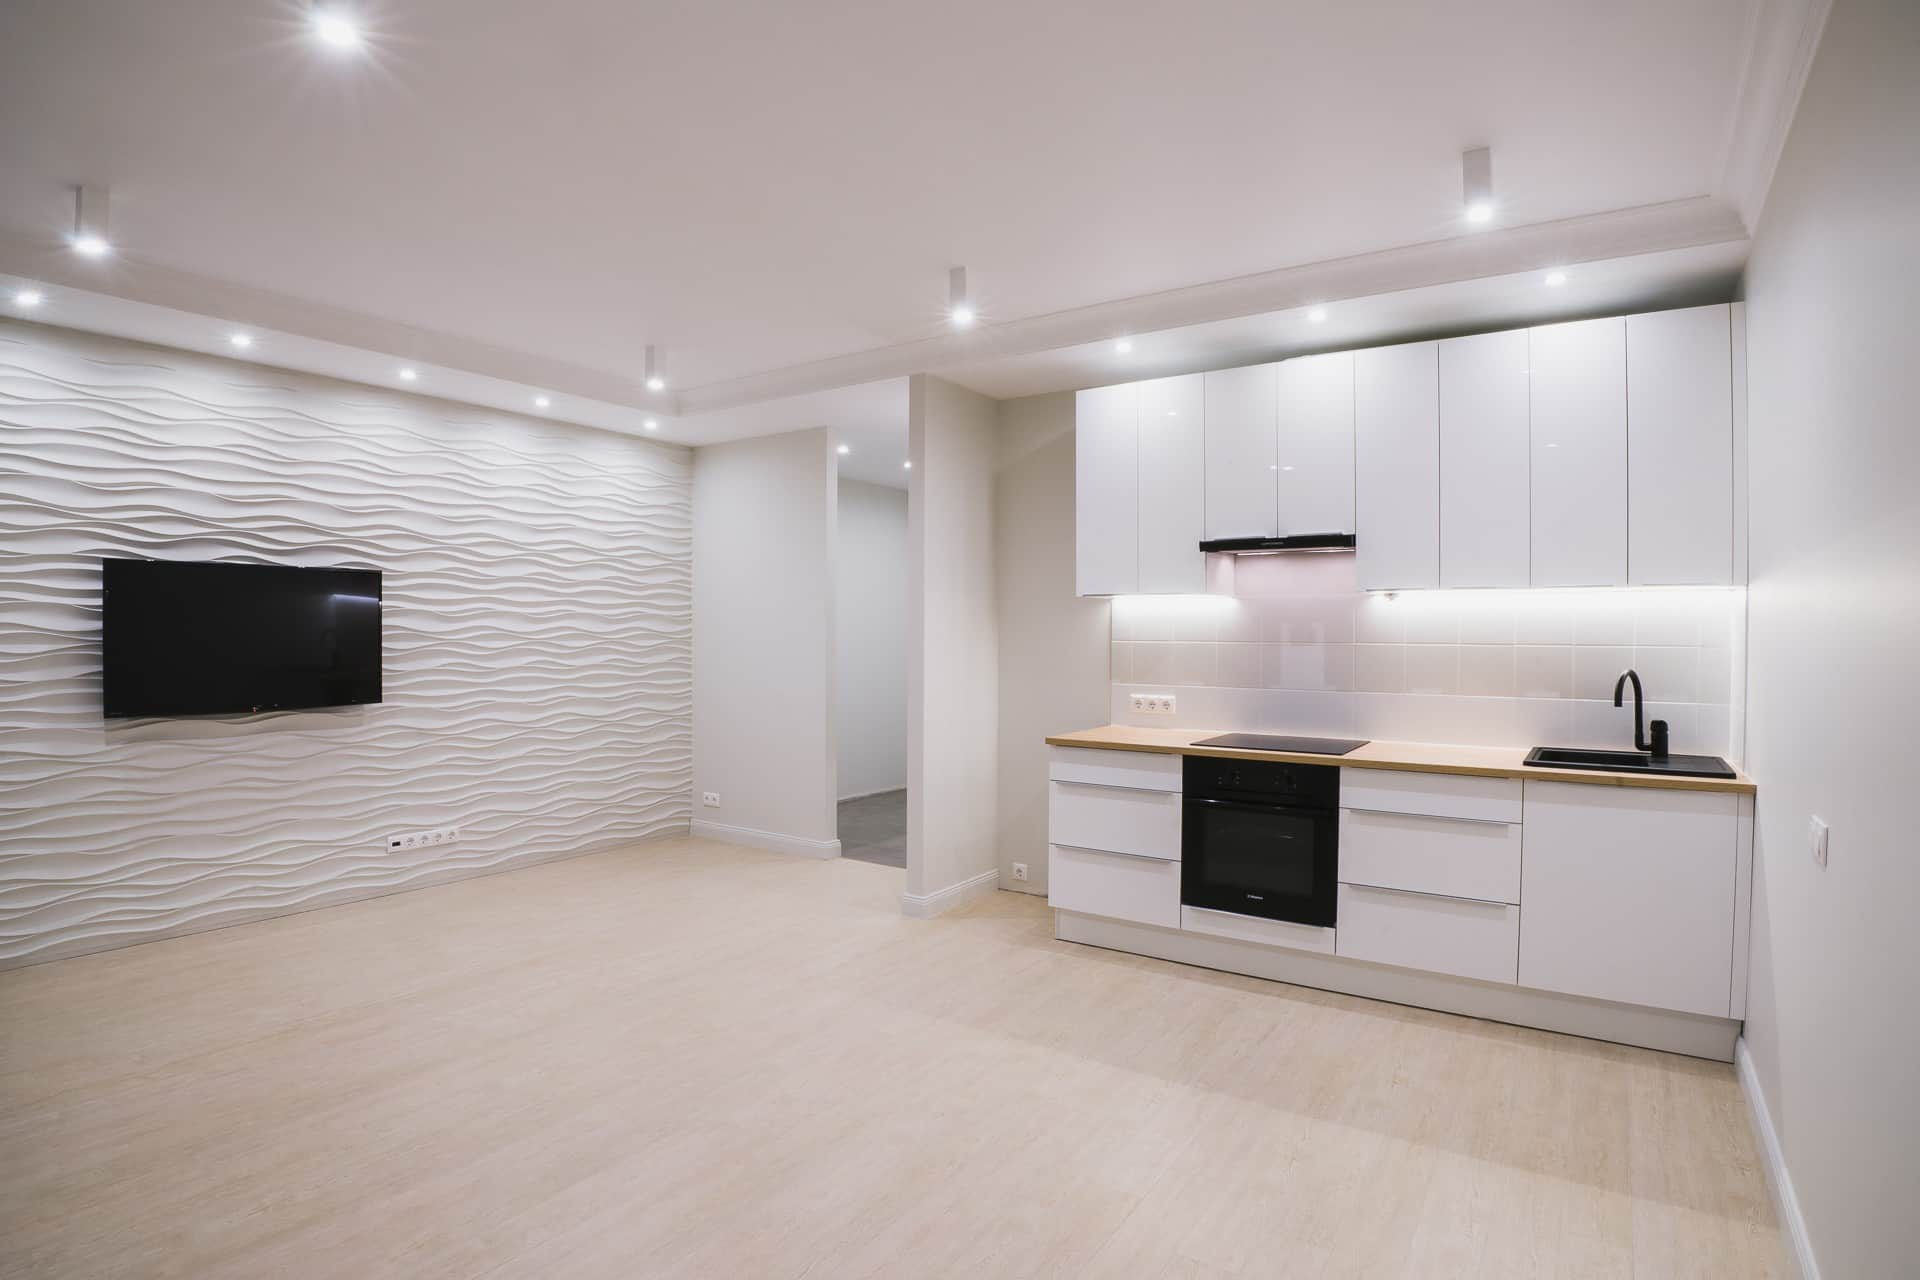 Don't Move, Improve: Easy Ways To Change The Look And Feel Of Your Old Home. Staged apartment with fresh renovation in pastel colors and full of LED lighting